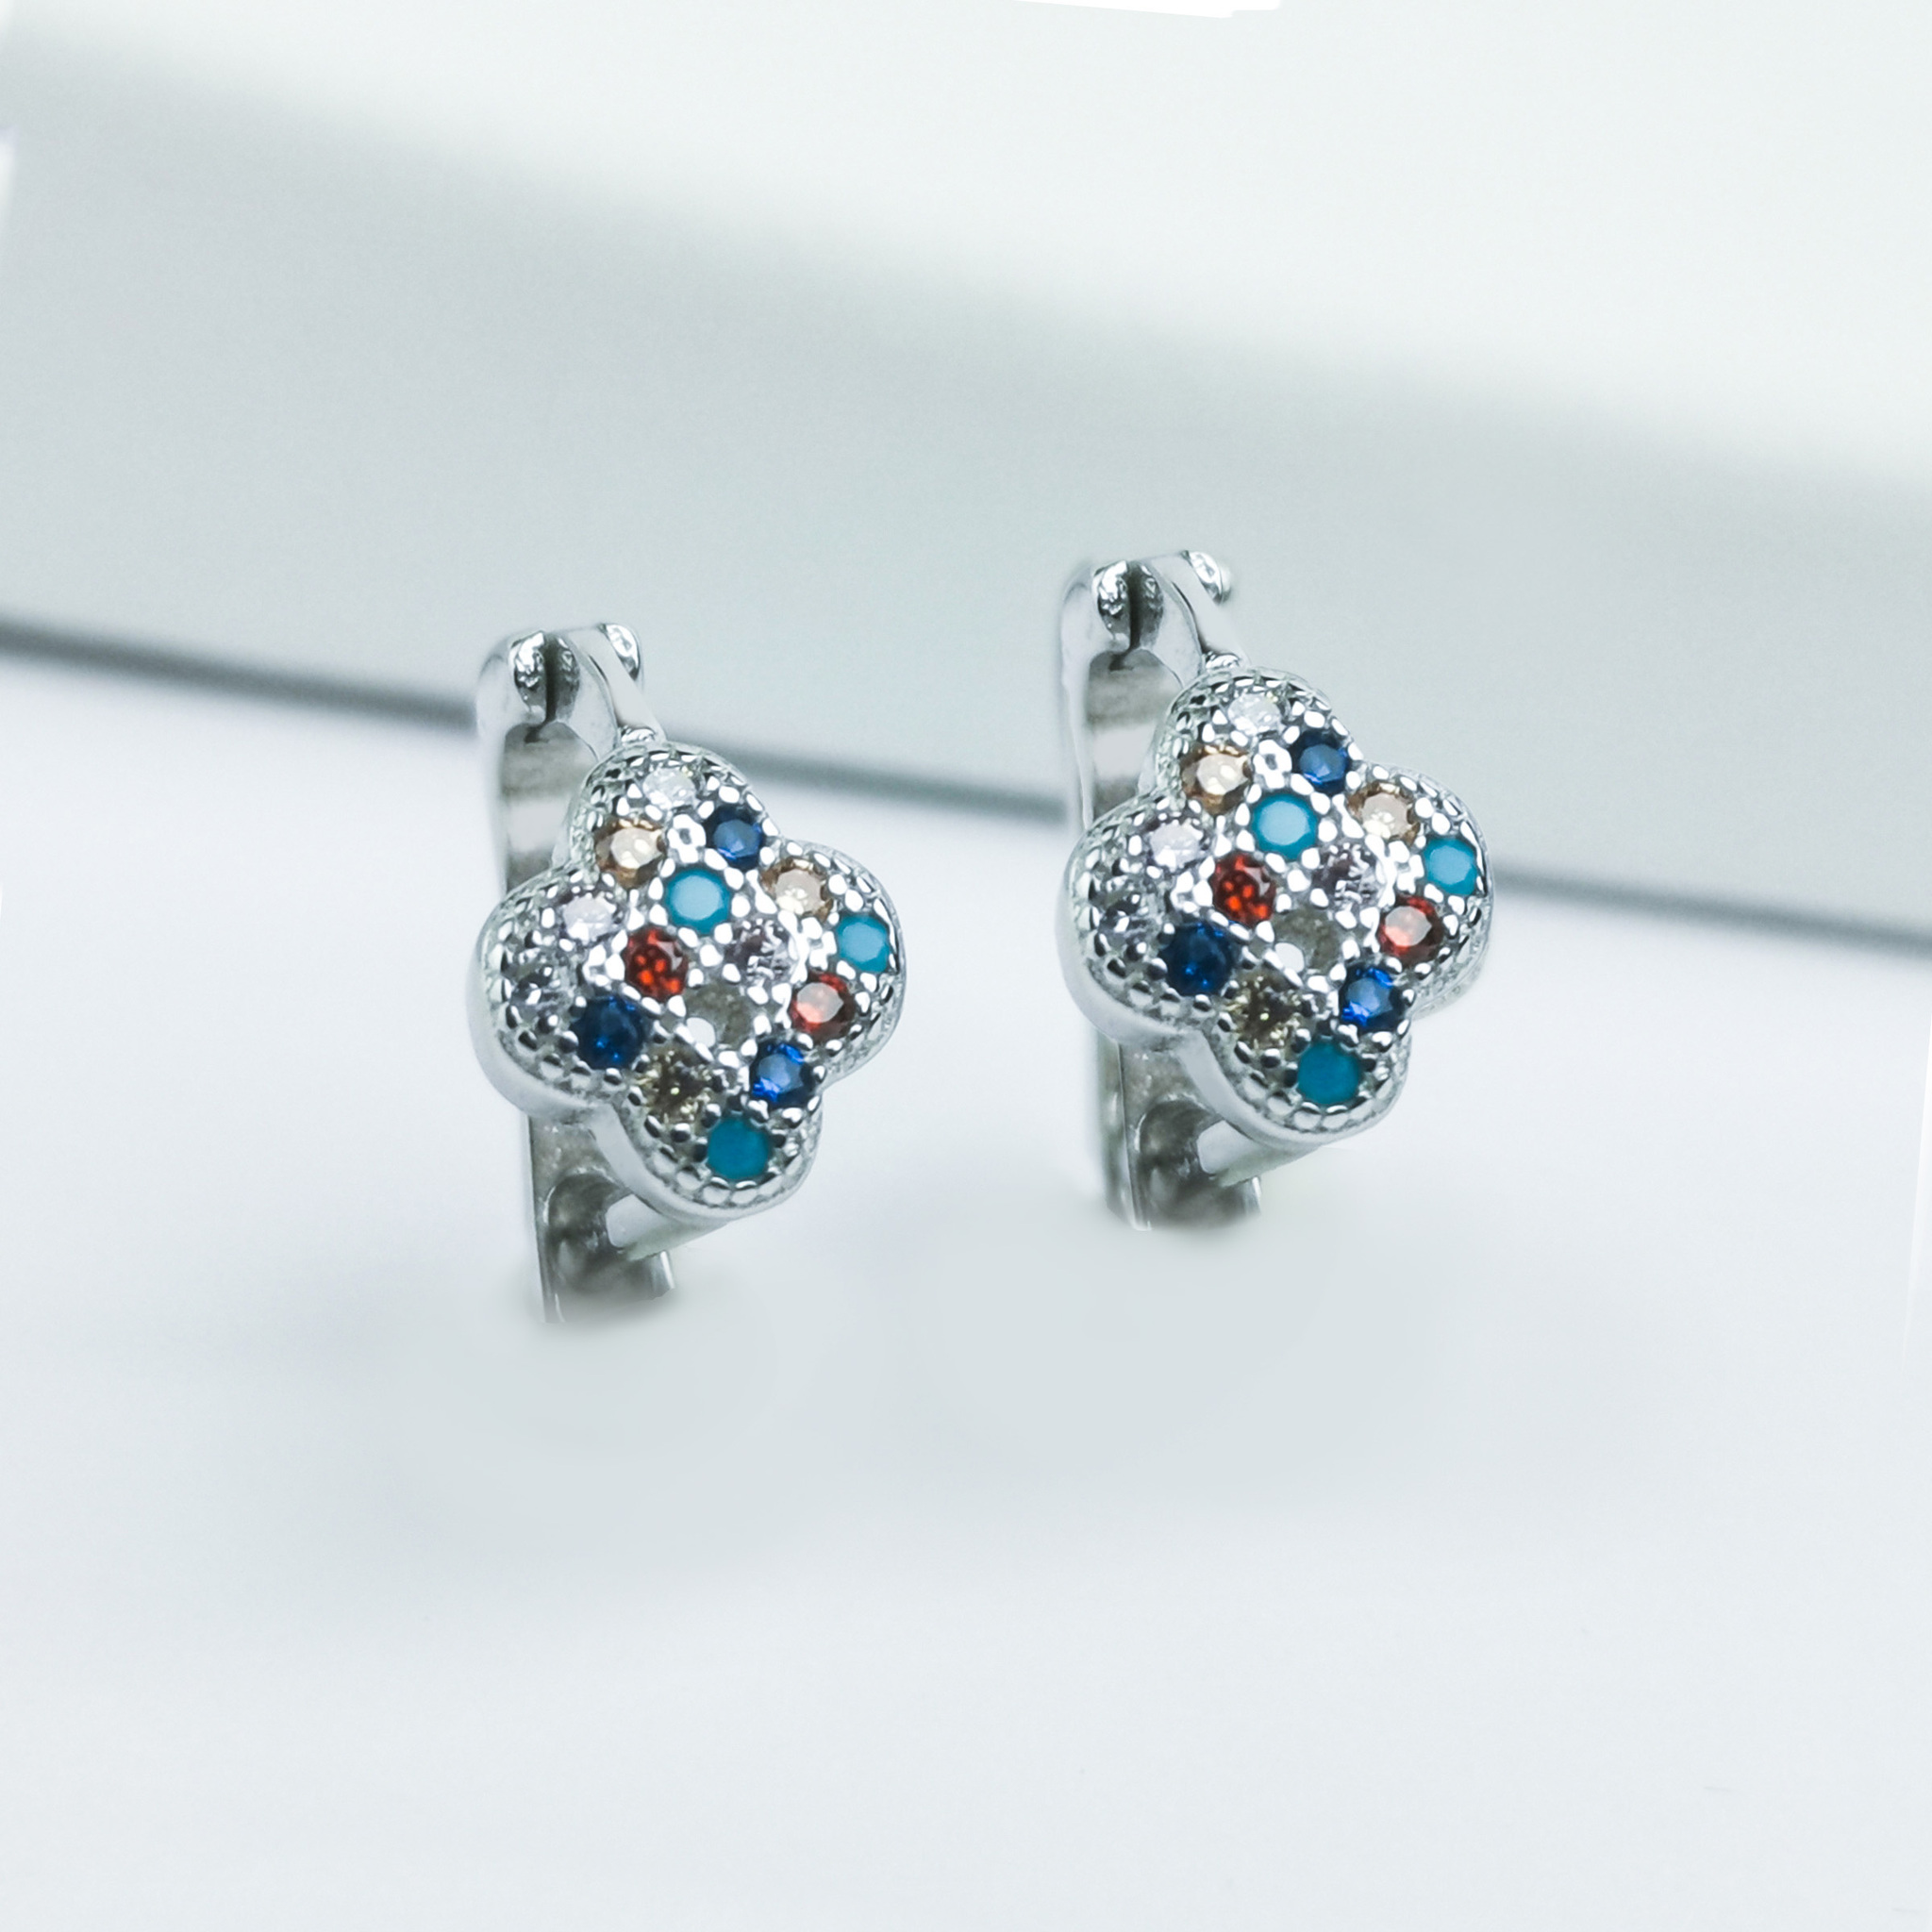 1 - Clover Stones Of Luck Silver Örhänge 925 Modern and trendy earings and women jewelry and accessories